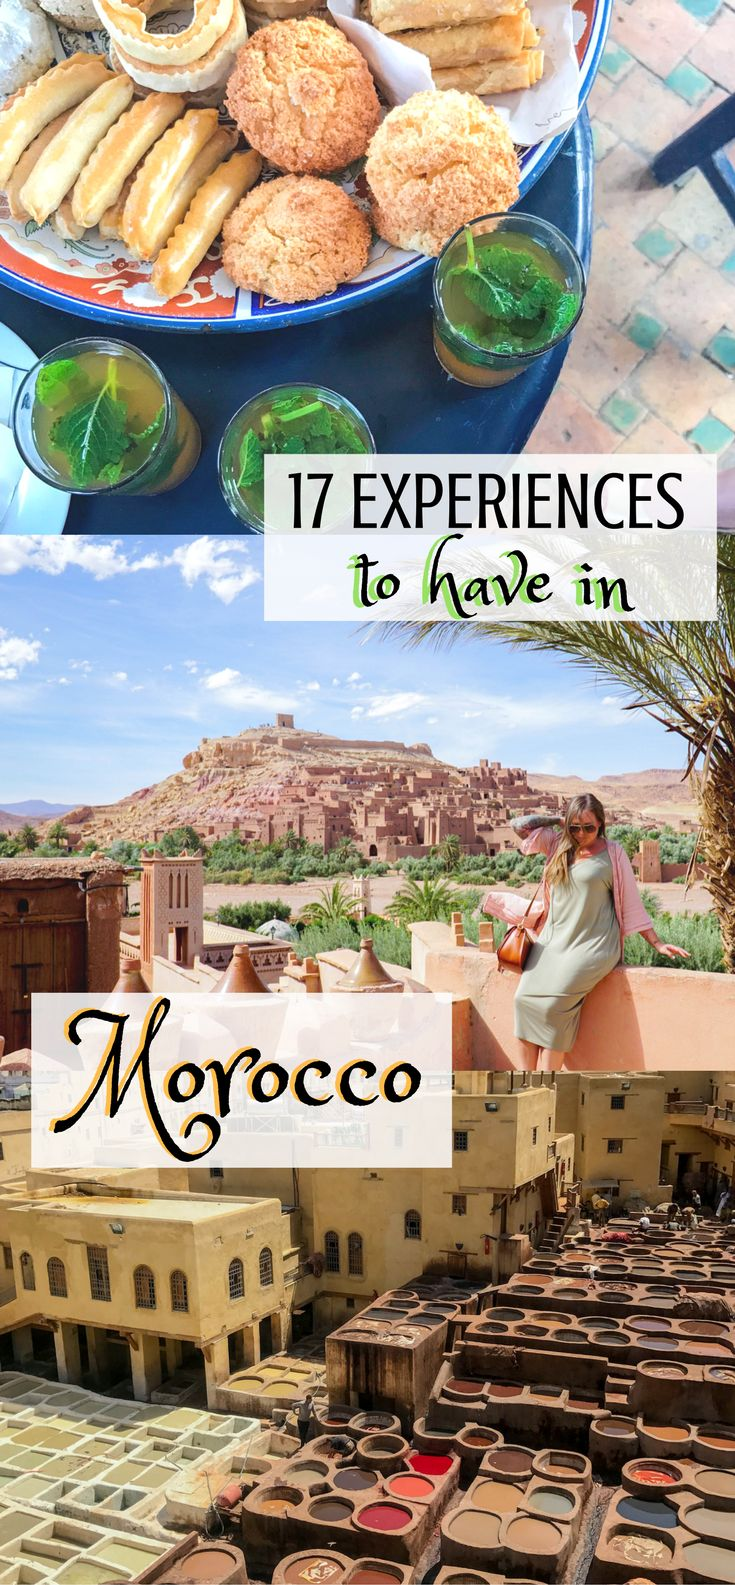 17 Experiences to have in Morocco | Things to do in Morocco | Morocco Bucket List | What to do in Morocco | Moroccan Experiences | Things to do in Morocco | Fez, Morocco | Meknes, Morocco | Casablanca, Morocco | Marrakech, Morocco | Sahara Camping | Camel Rides in Morocco |